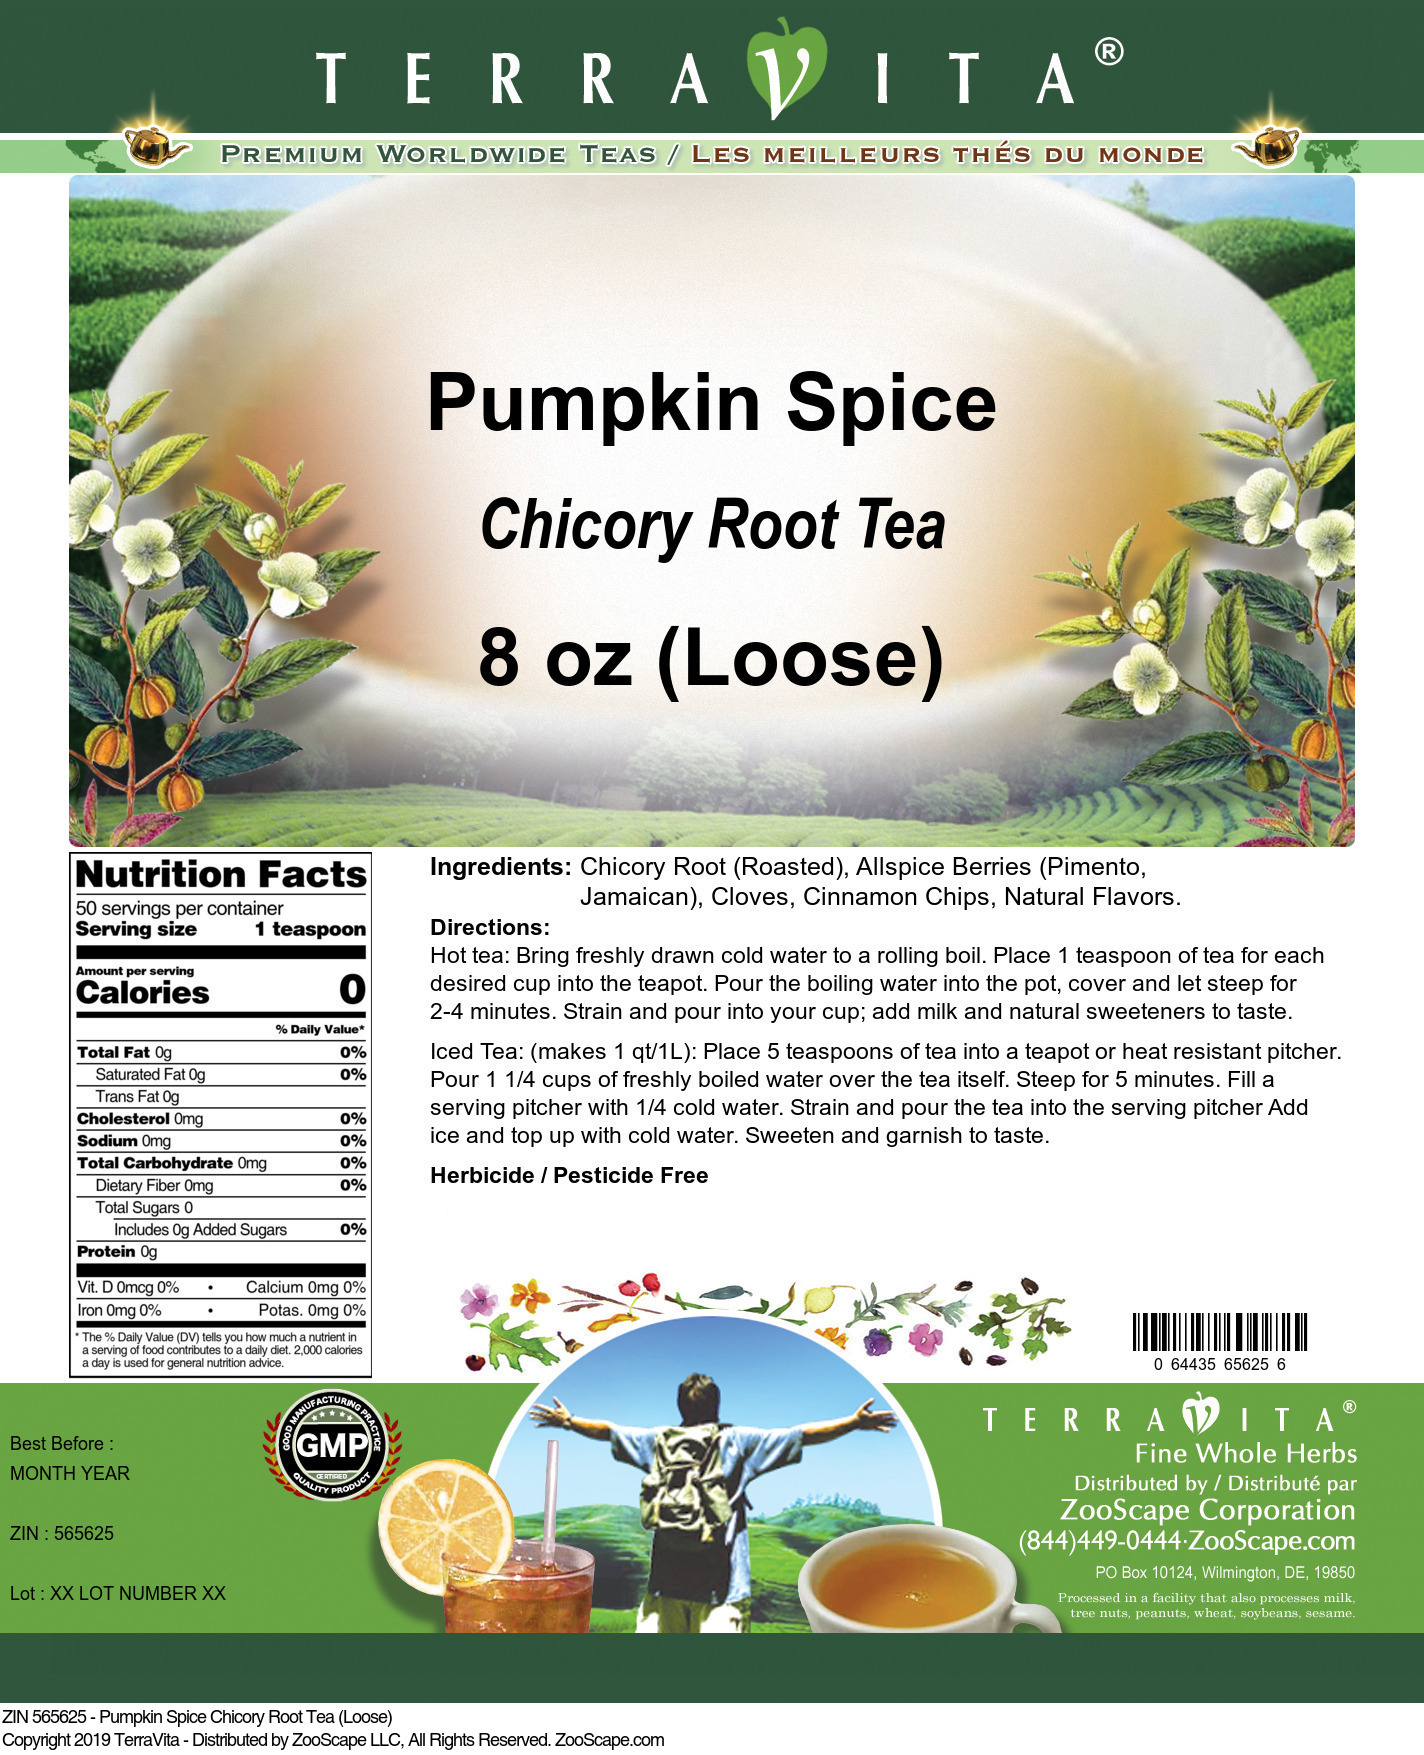 Pumpkin Spice Chicory Root